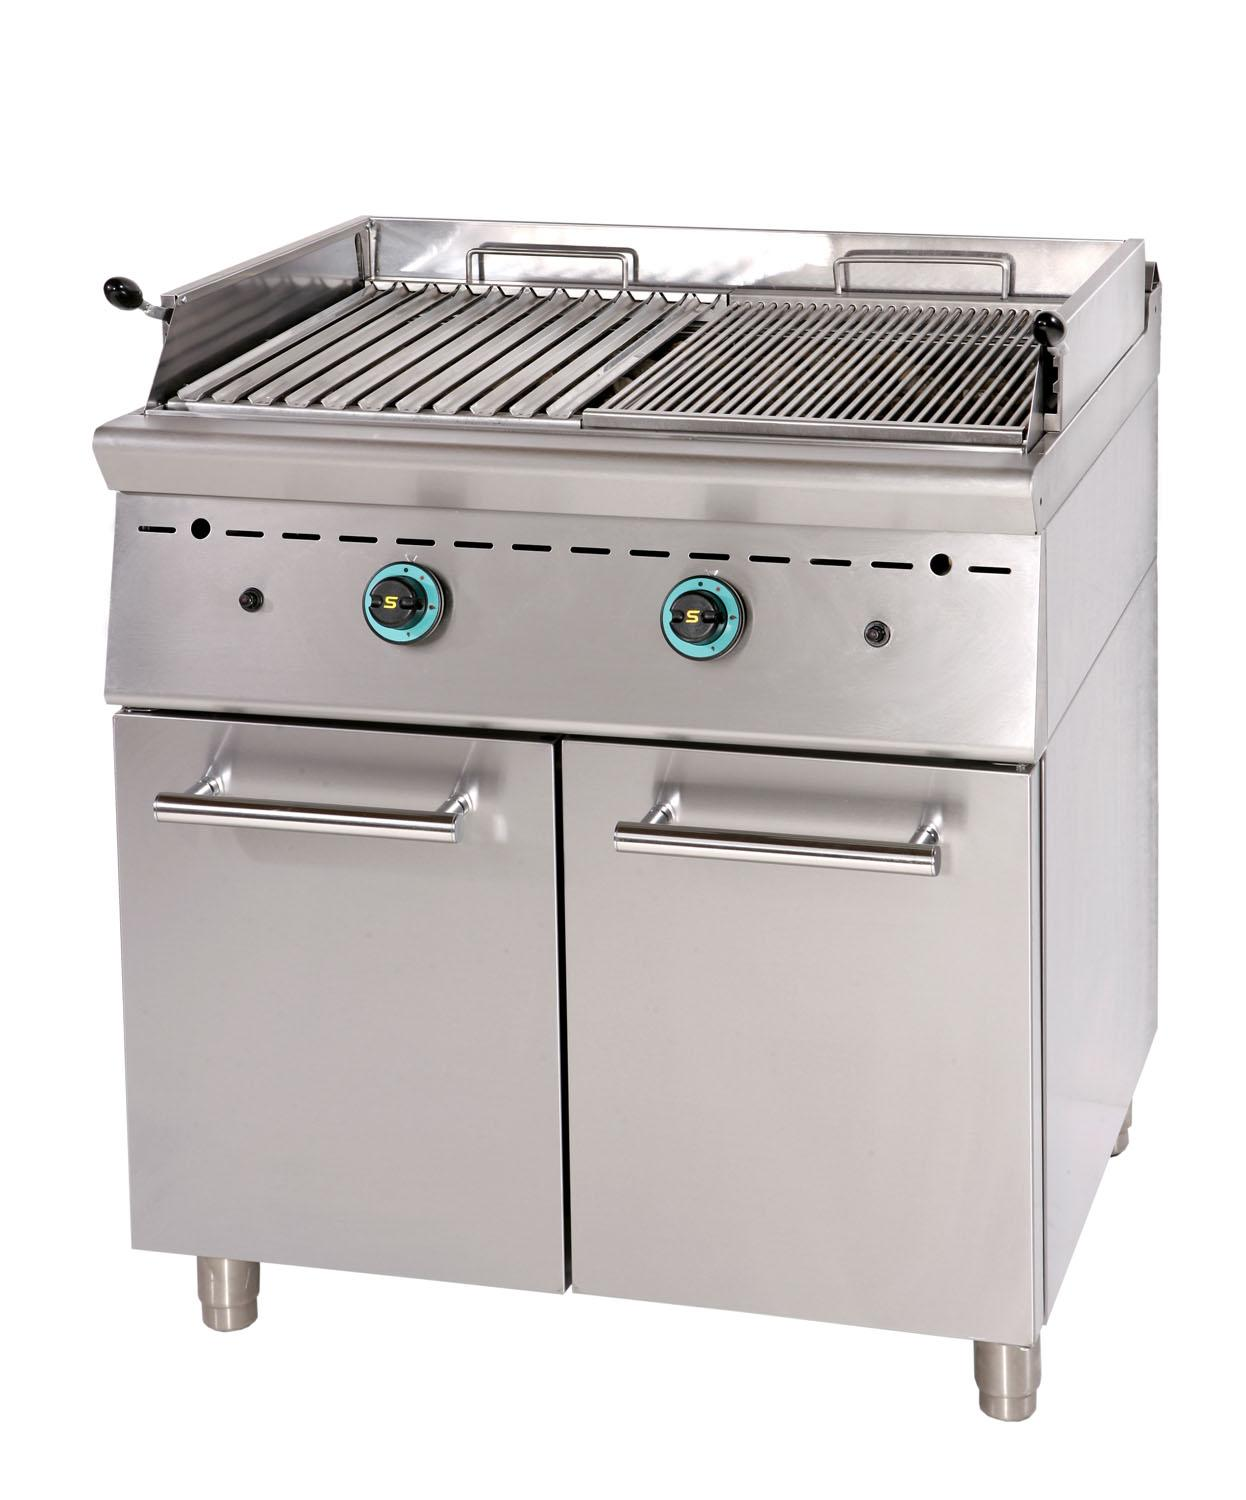 grills - gas grills with lava stones - gas lava stone grill gr8s7